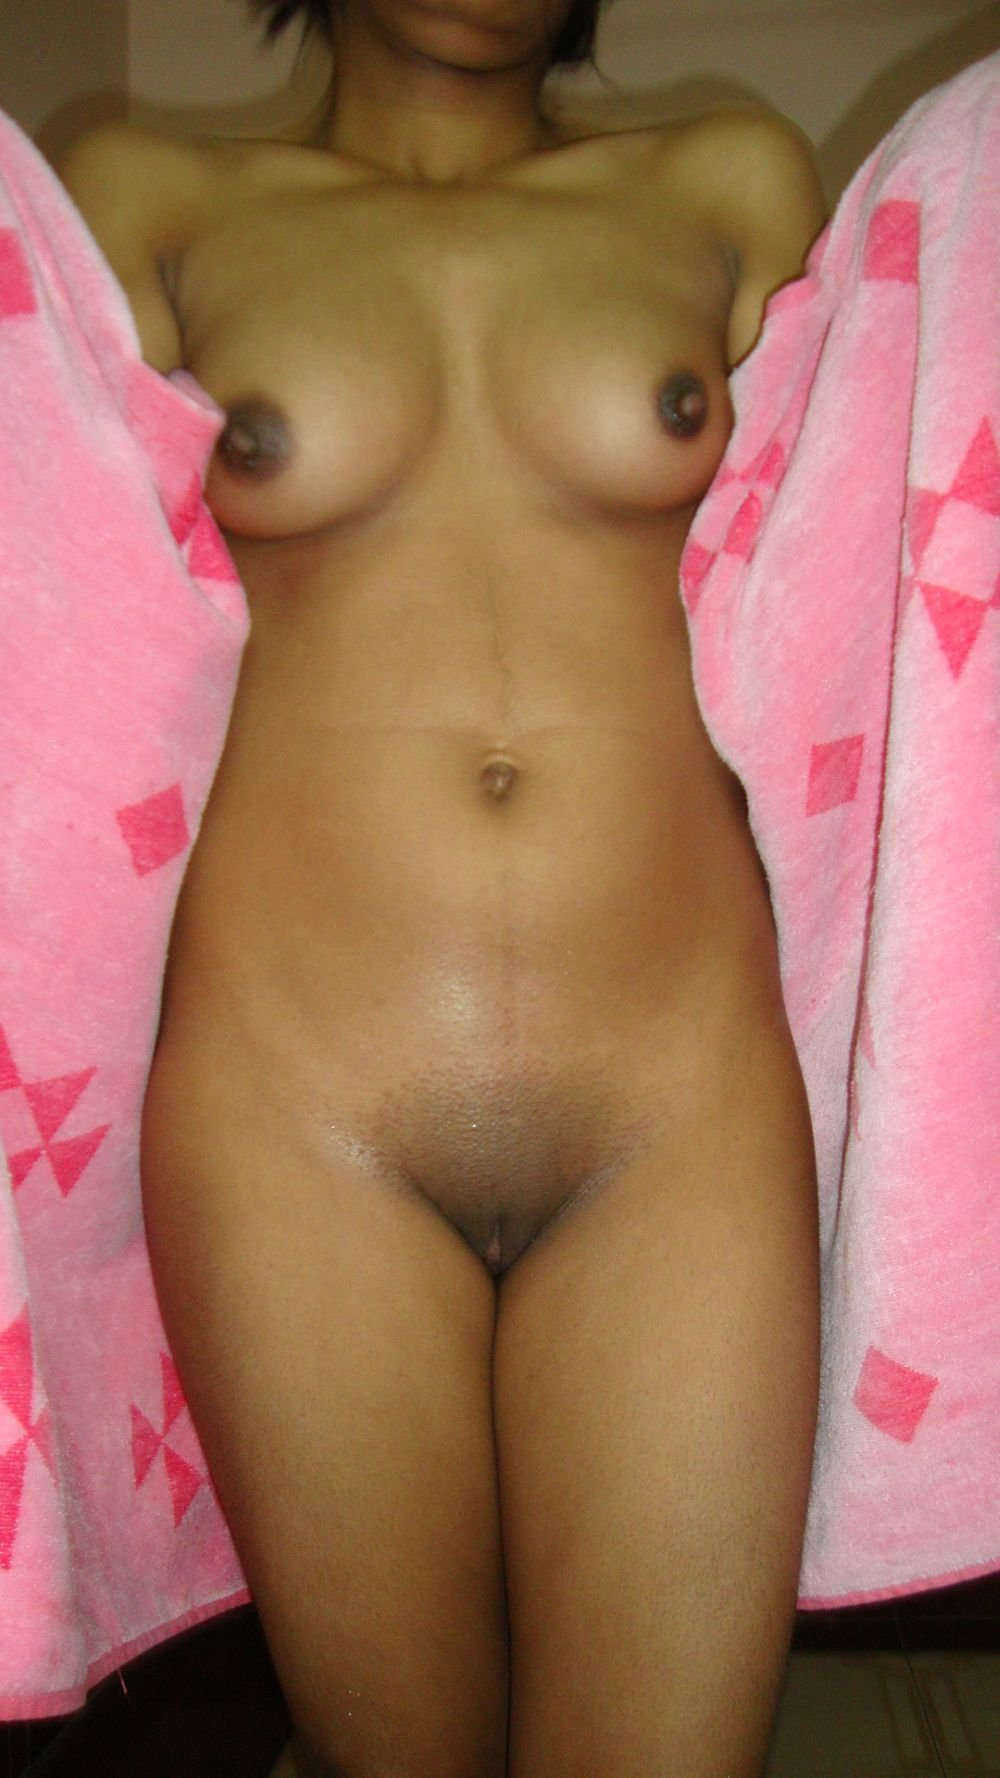 Goan gf nude pic — photo 3